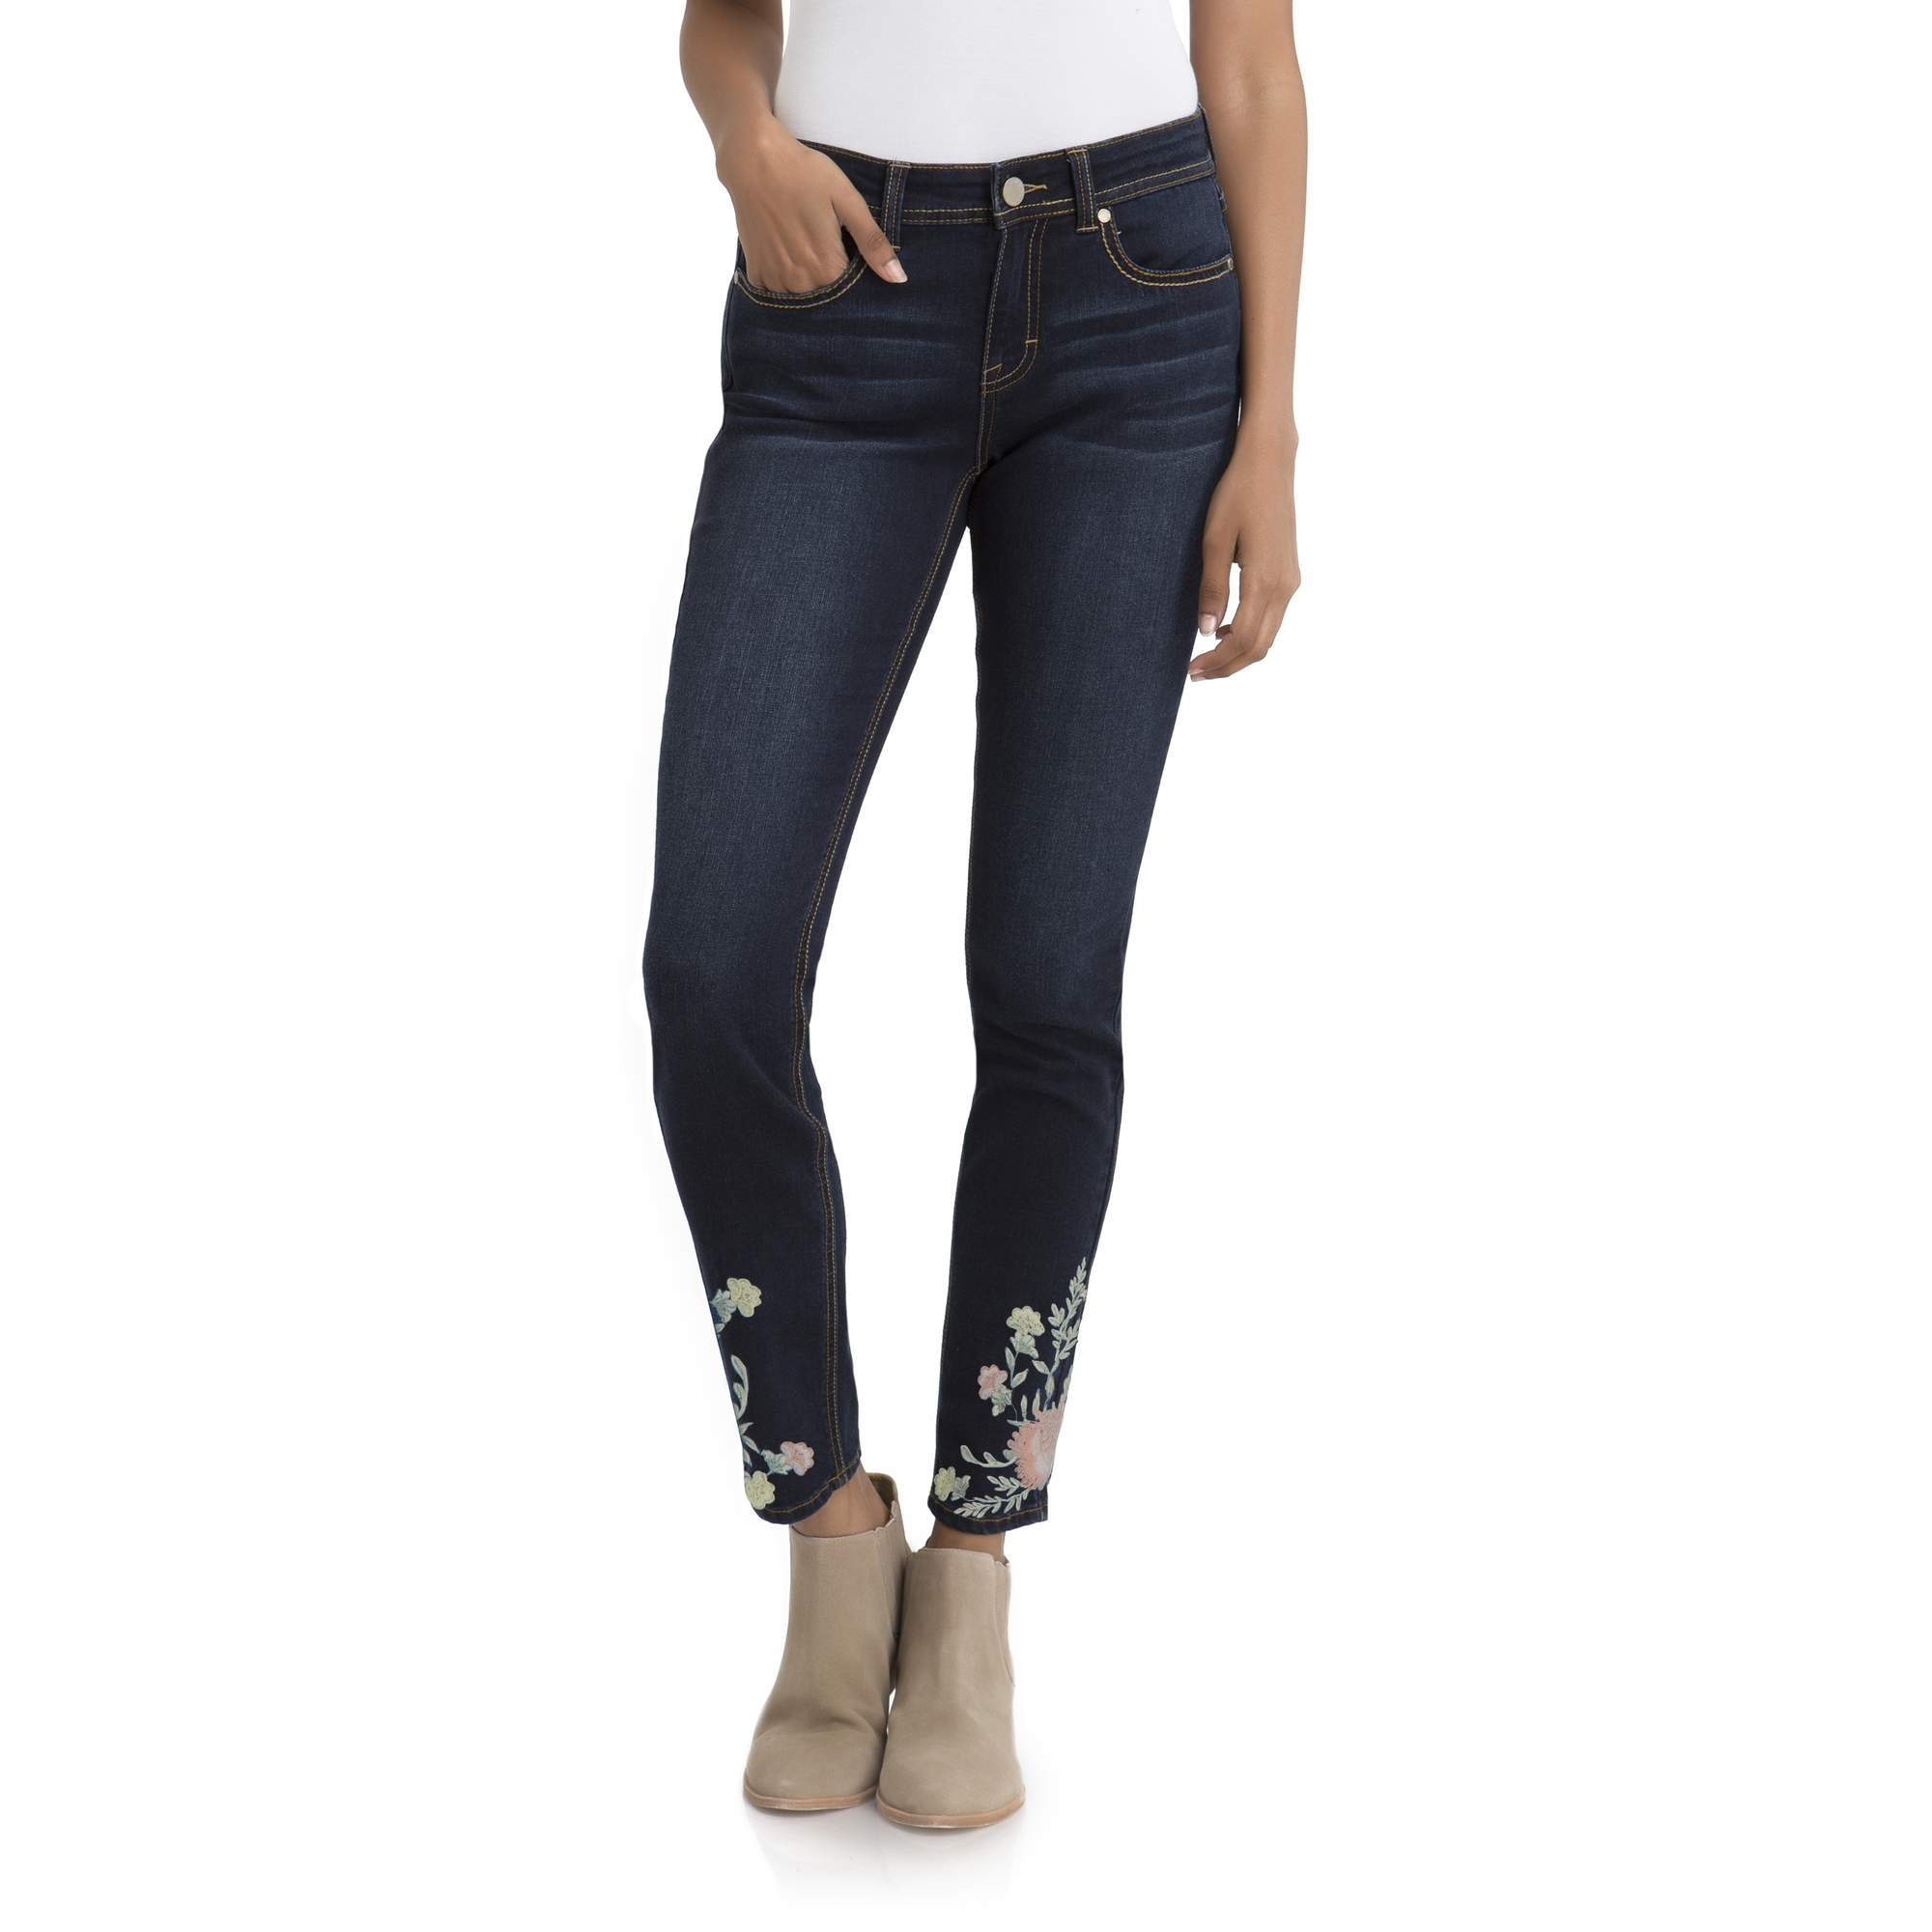 Women's High Rise Ankle Jean With Embroidery by Jordache